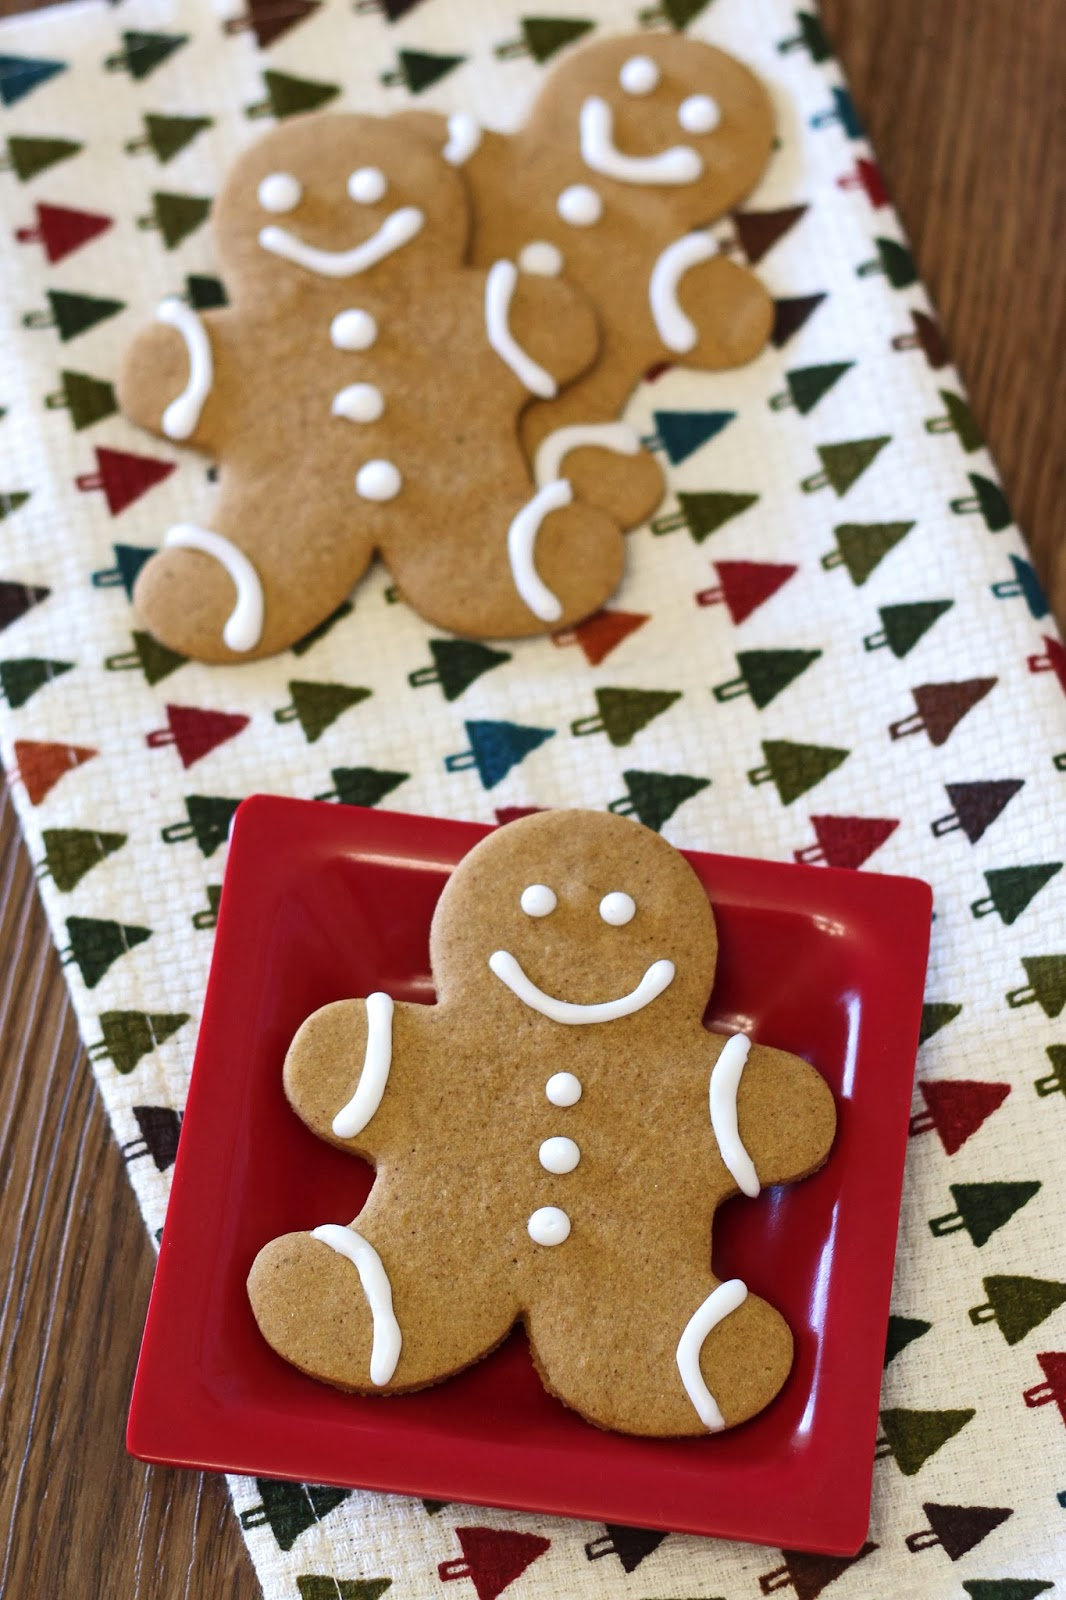 So…Let's Hang Out – Gluten-Free Christmas Cookie Exchange!